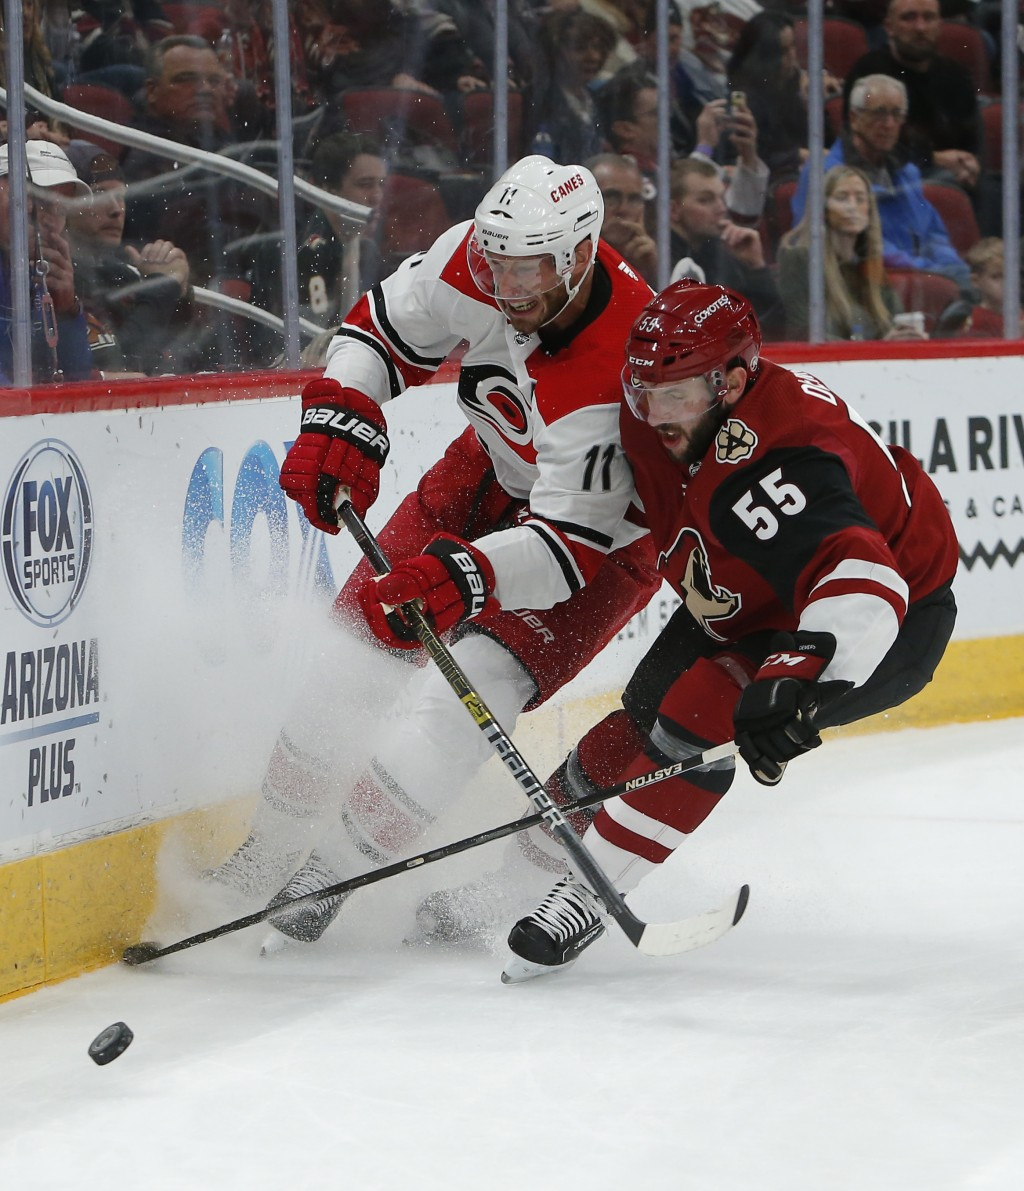 Carolina Hurricanes center Jordan Staal (11) and Arizona Coyotes defenseman Jason Demers vie for the puck during the first period of an NHL hockey gam